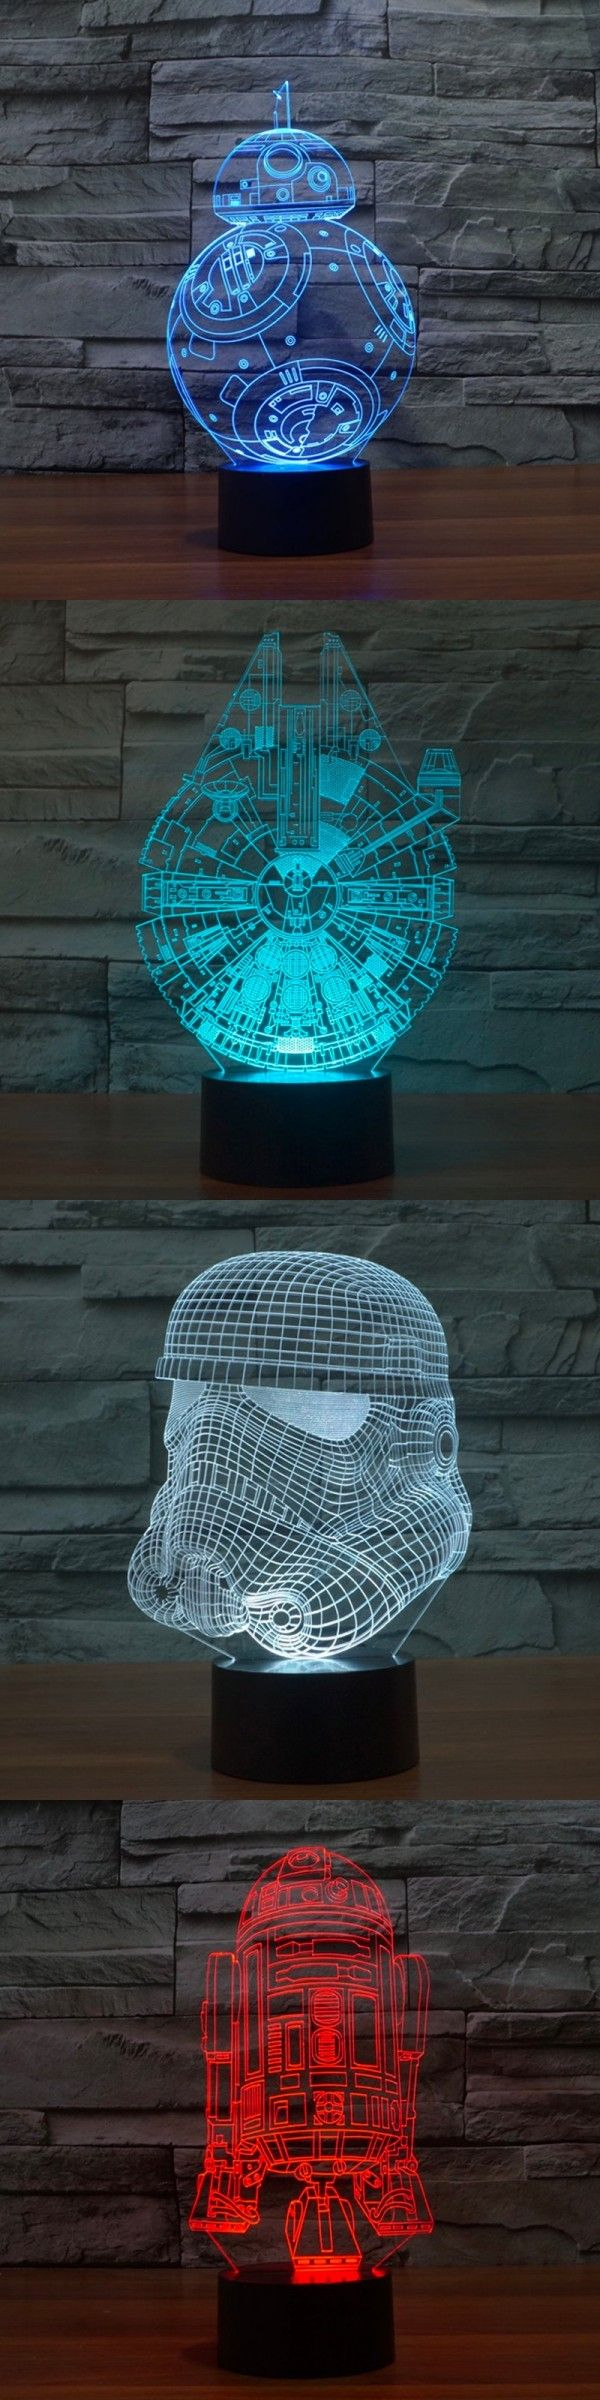 best geek room ideas on pinterest  geek decor nerd room and  - the ultimate star wars home decor megalist